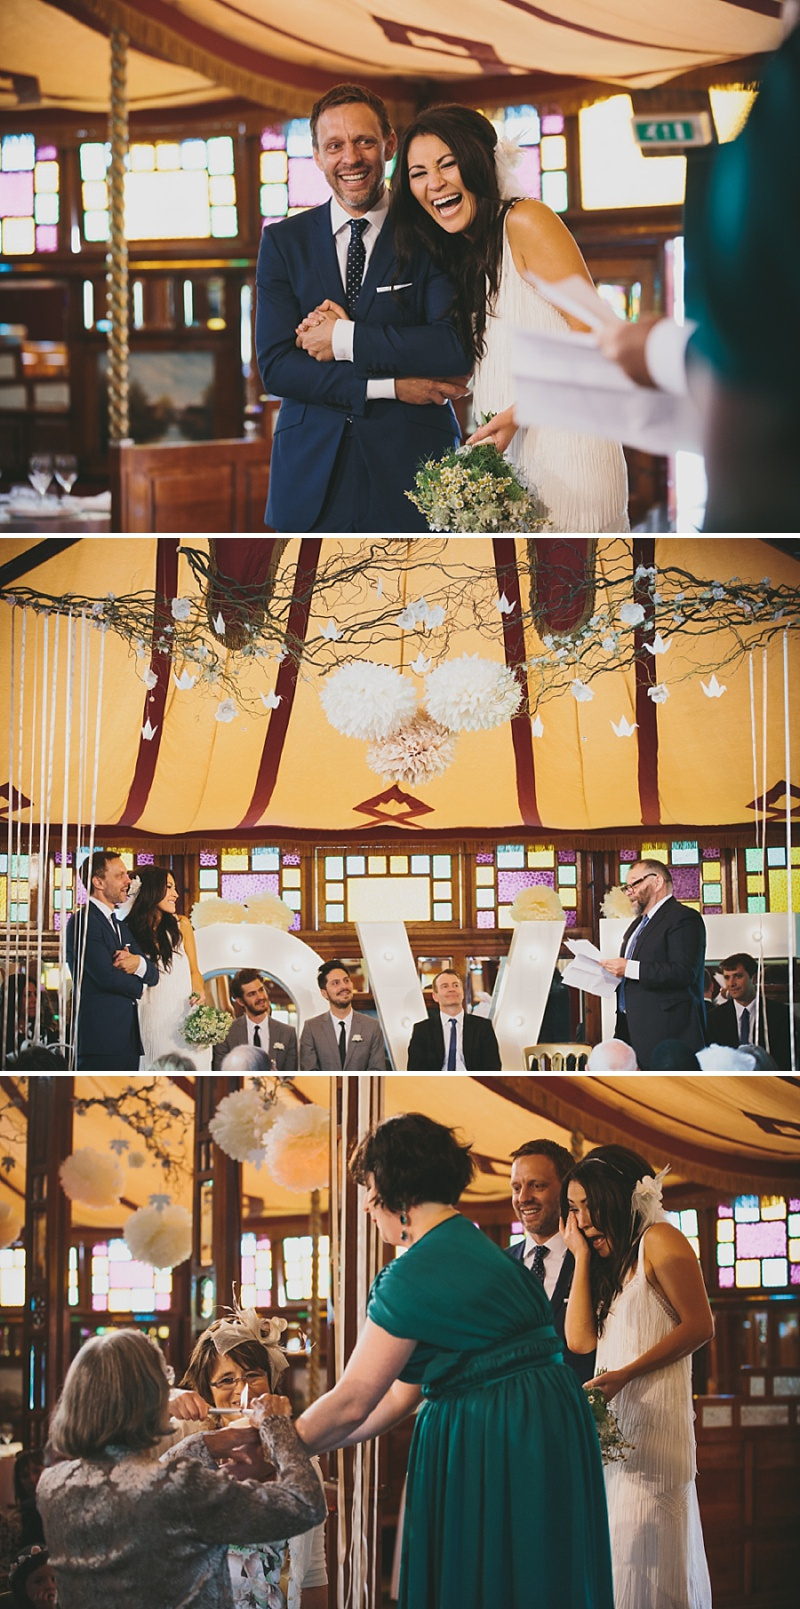 A Great Gatsby Woodstock themed wedding at Stanford Hall with a bridal gown from Blackburn Bridal Couture 0037 Woodstock Meets The Great Gatsby.